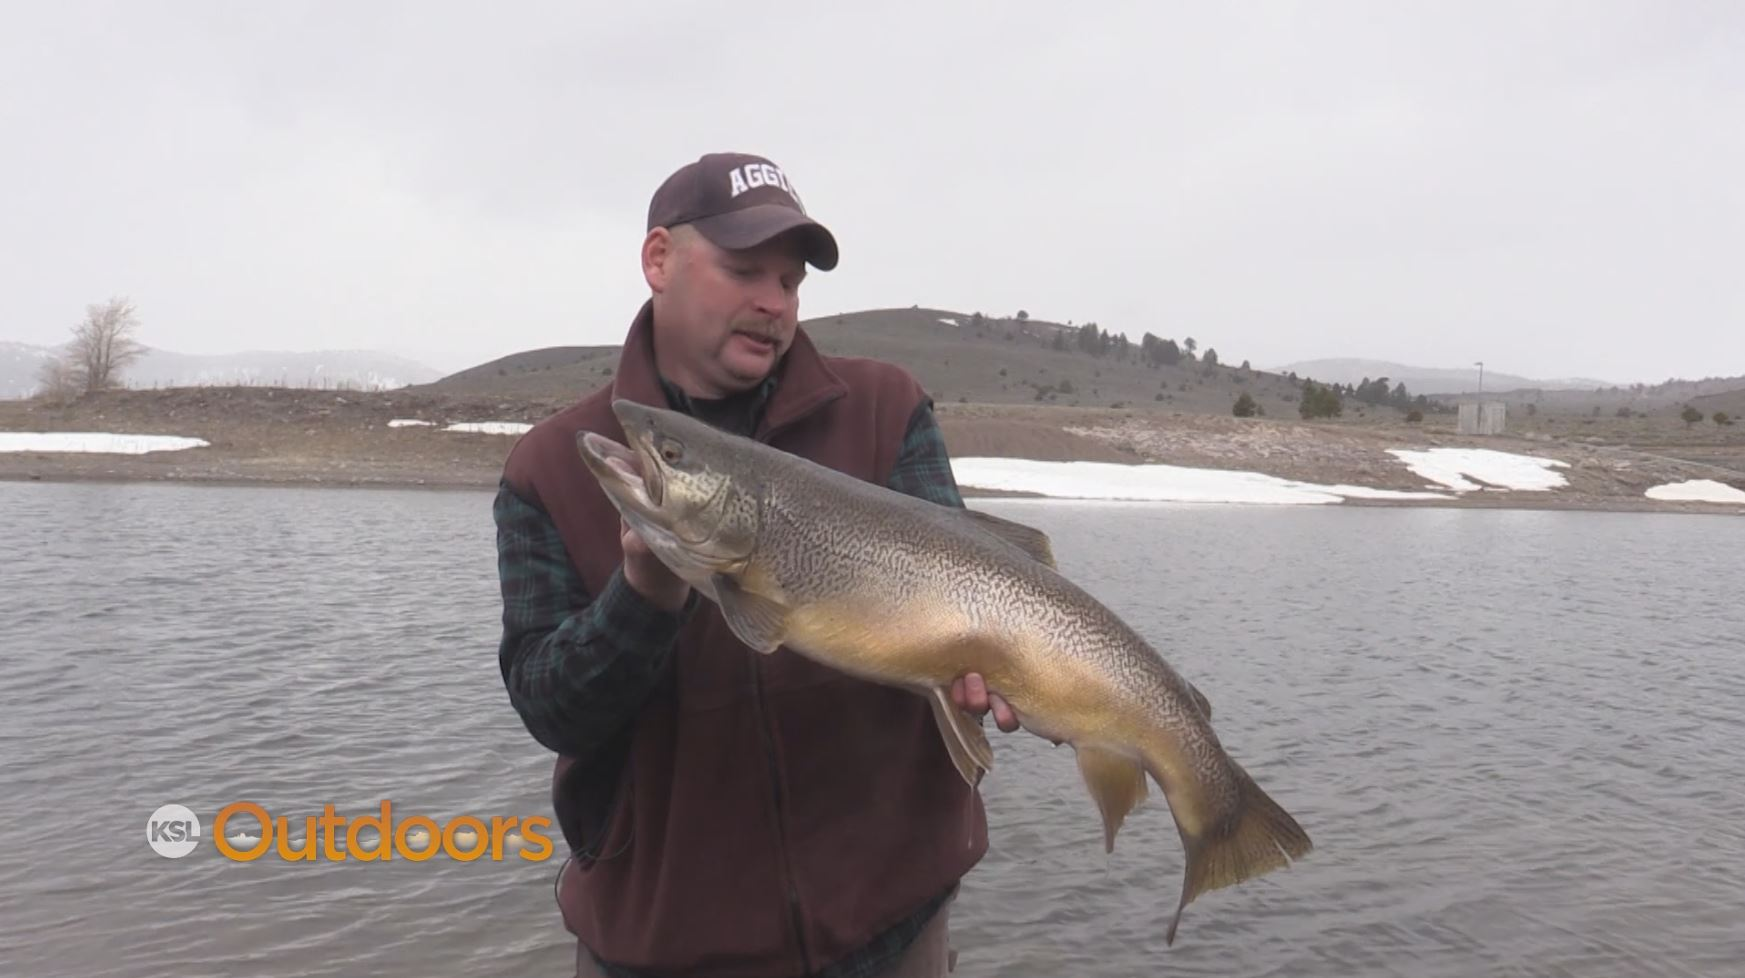 Ksl outdoors huge tiger trout at panguitch lake ice off for Utah ice fishing report